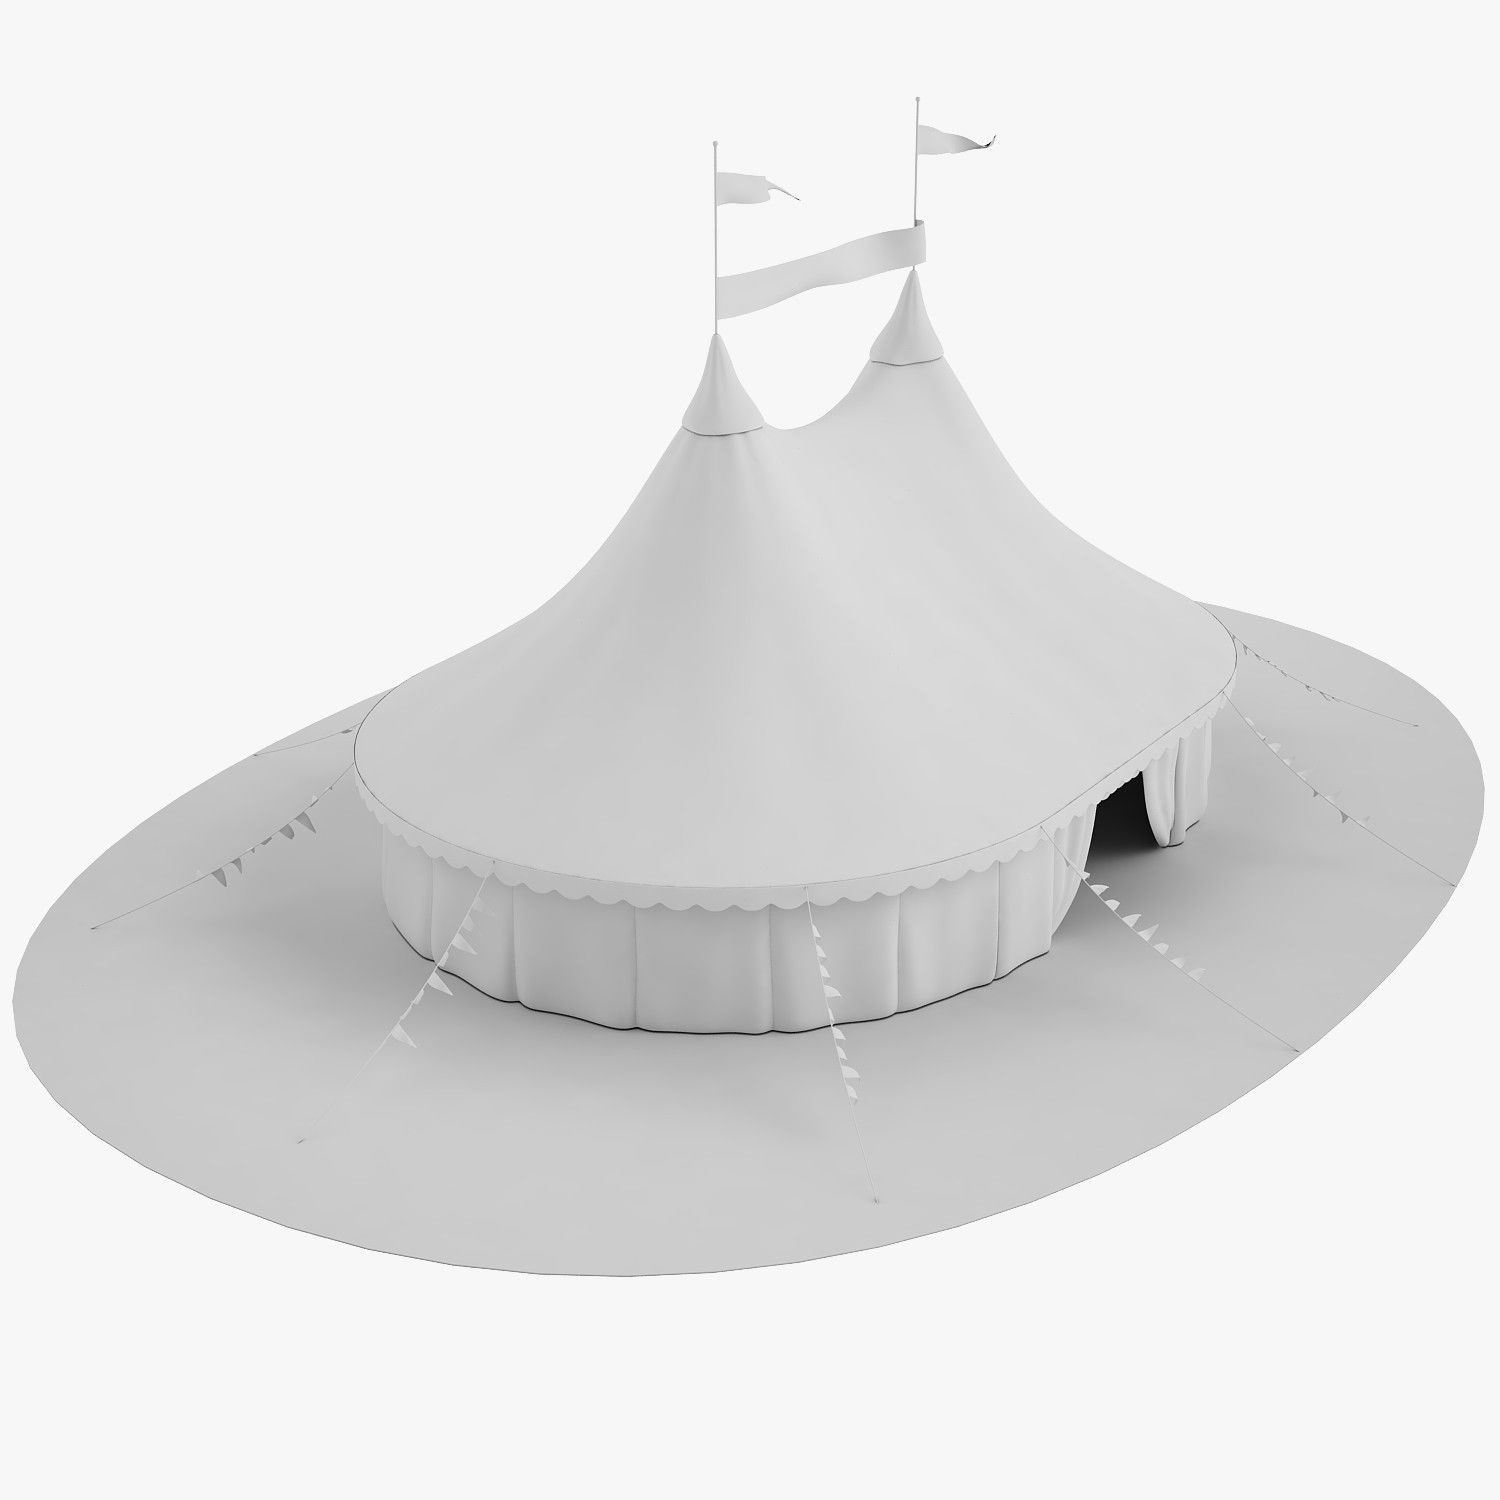 free circus tent 3d model & free circus tent 3d model | ?????? | Pinterest | Tents 3d and Free